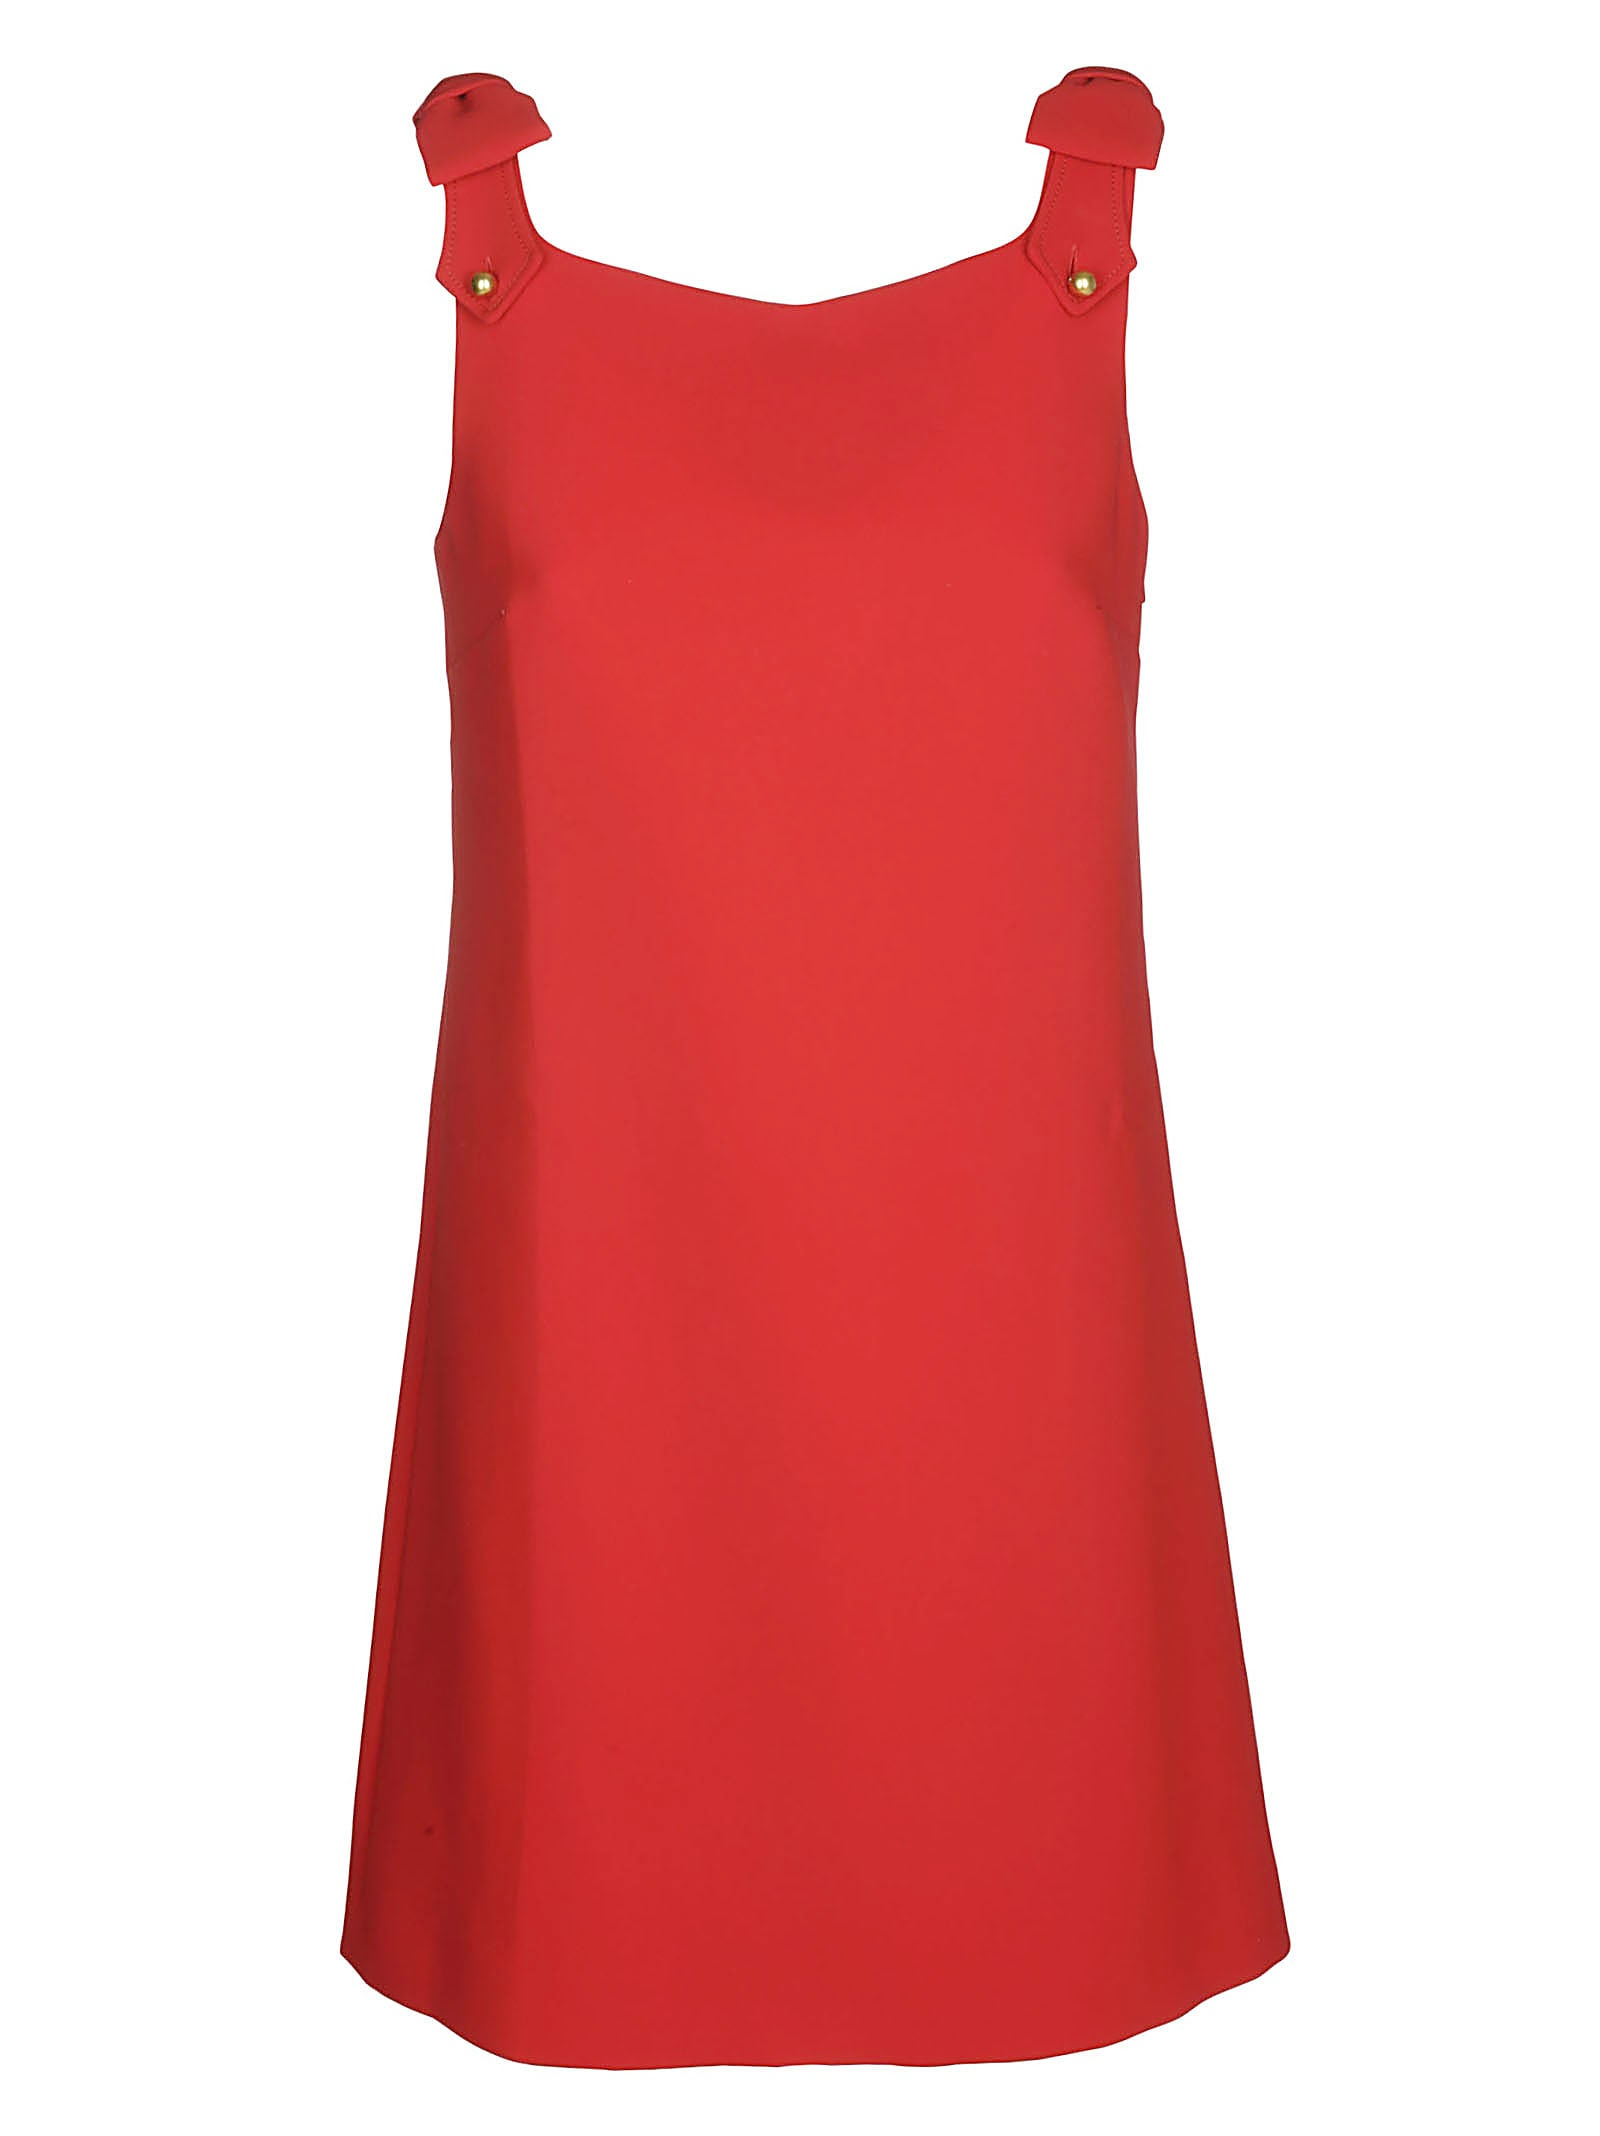 Miu Miu Red Pinafore Dress